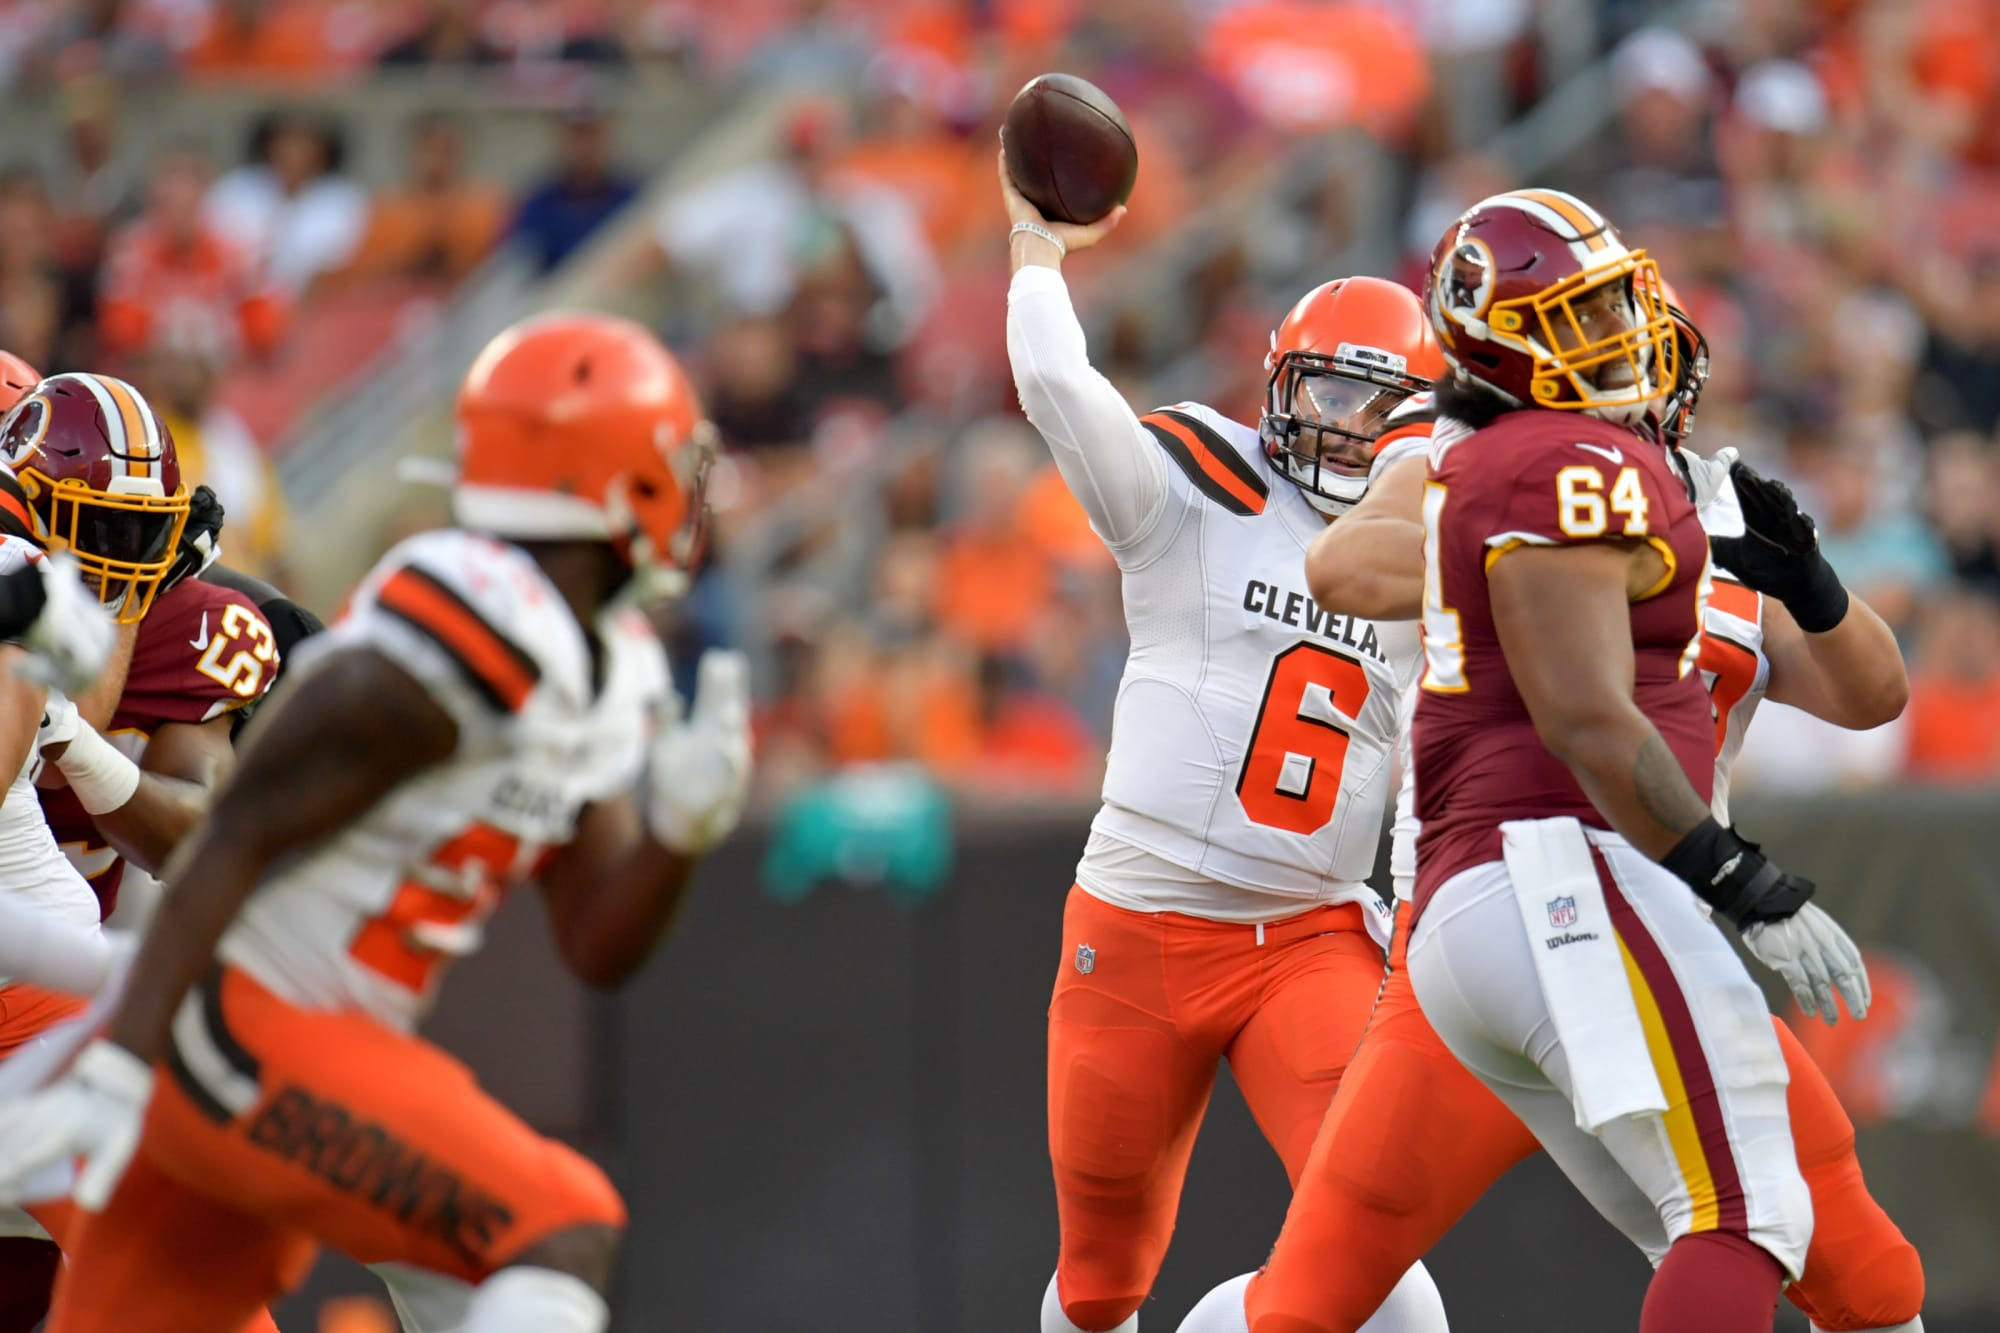 Cleveland Browns: Ken Zampese may be Washington's secret weapon vs. Baker Mayfield